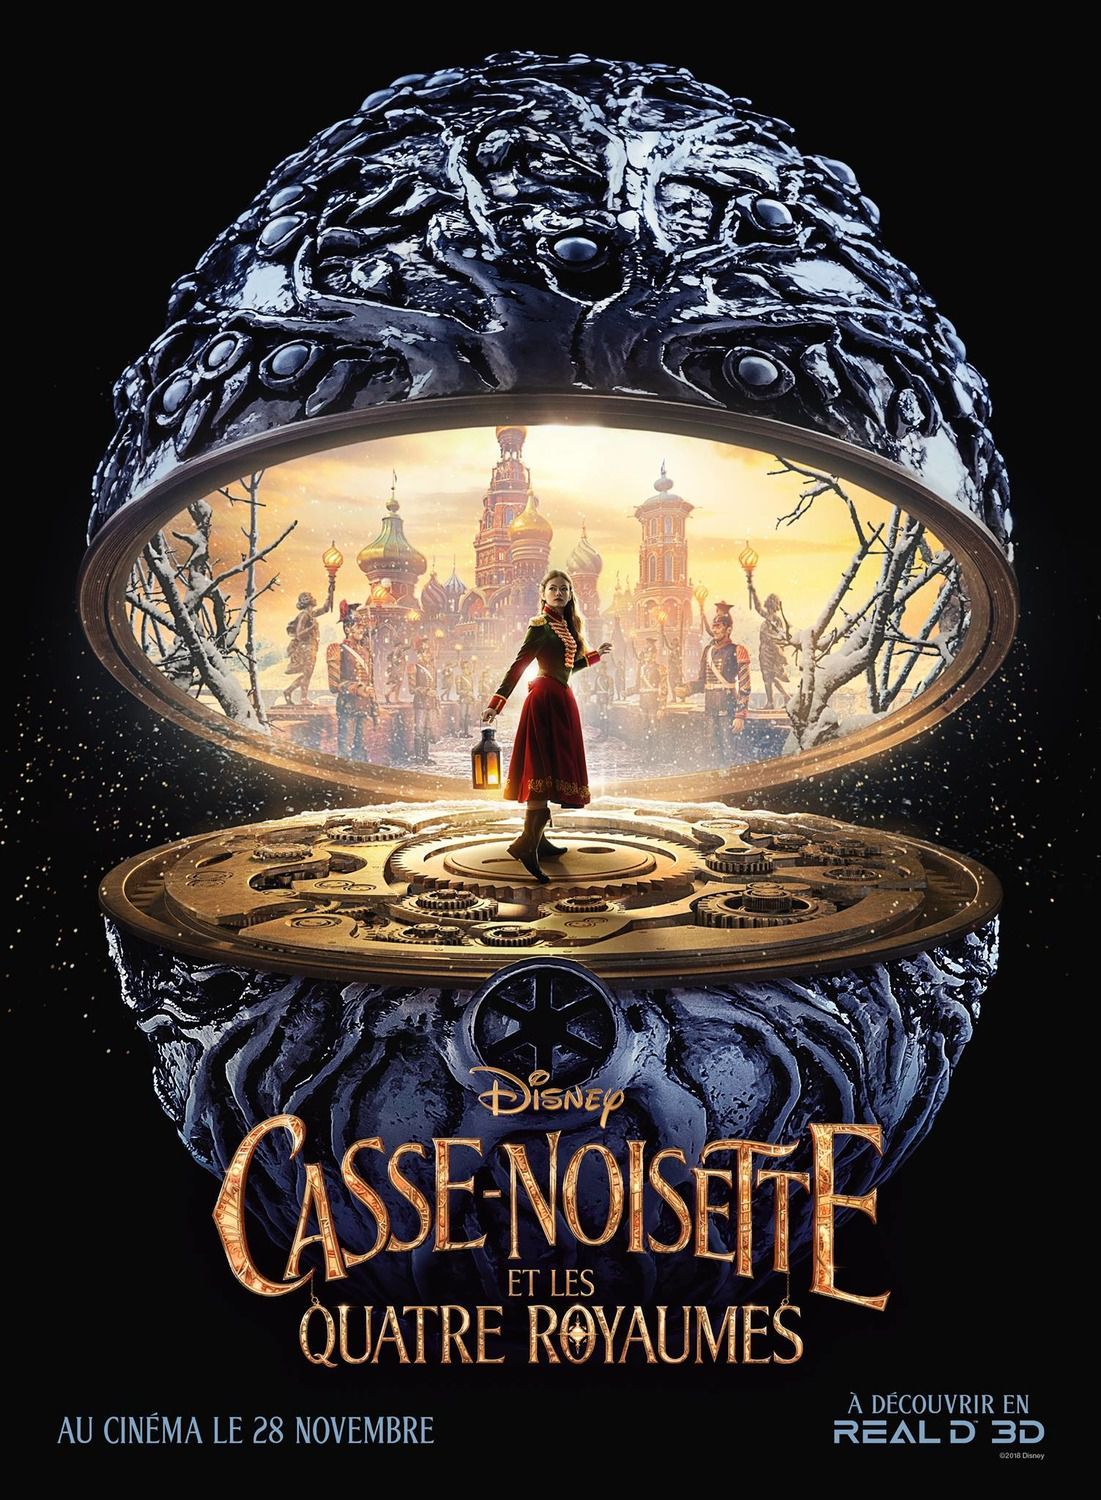 Nutcracker and the four Realms - Schiaccianoci live action - Casse-Noisette - poster collection